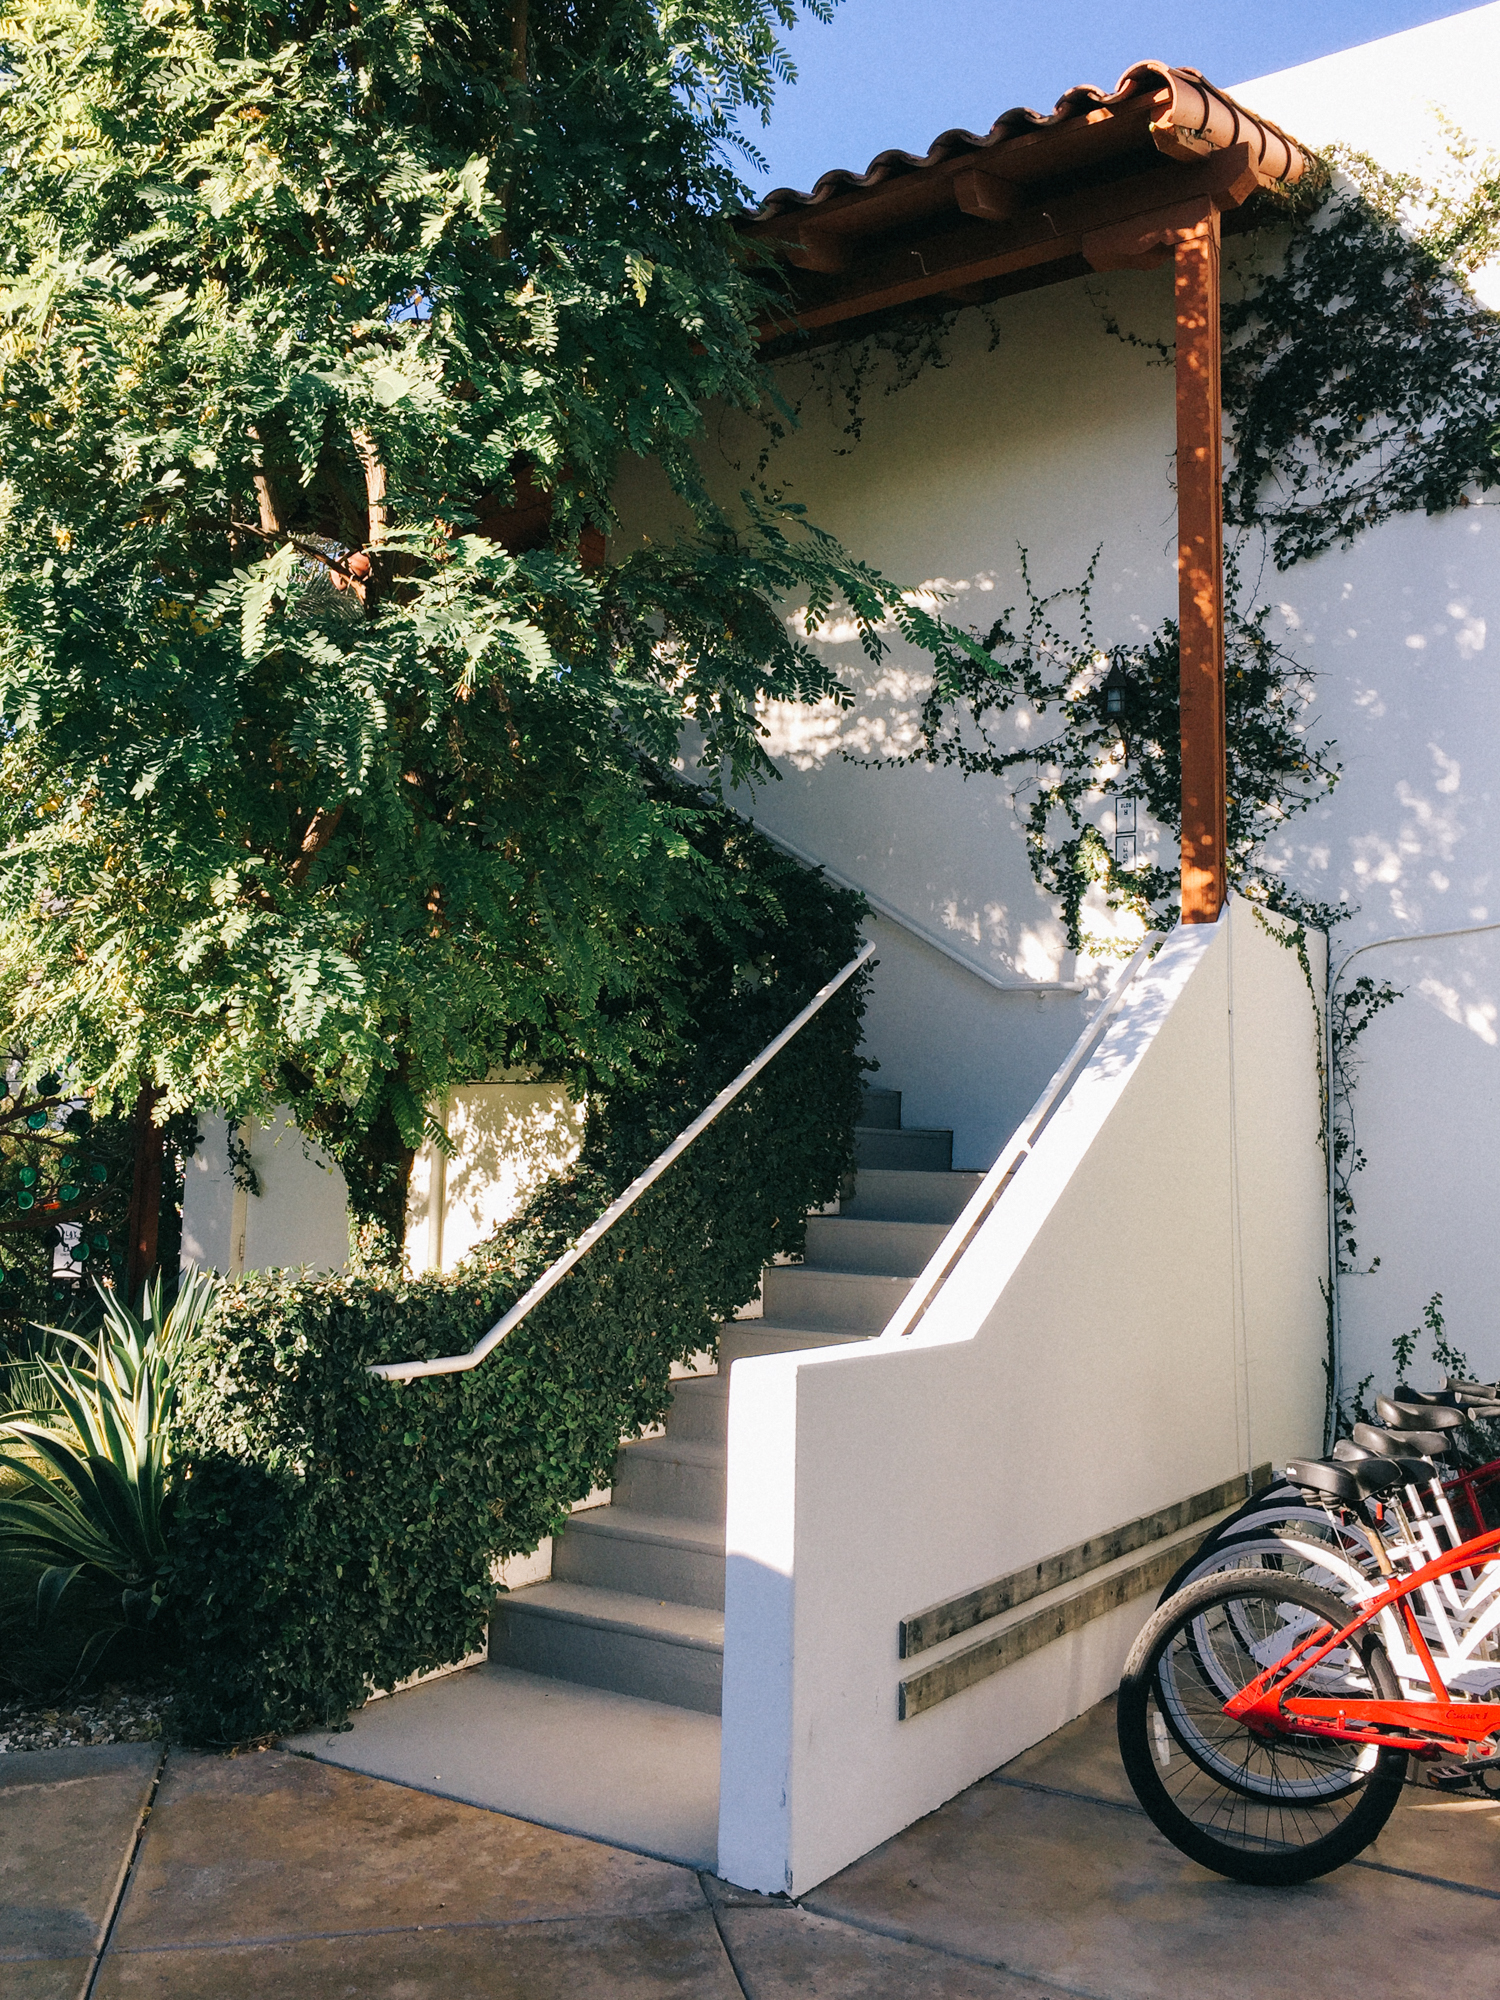 The best way to get around in palm springs | A Fabulous Fete